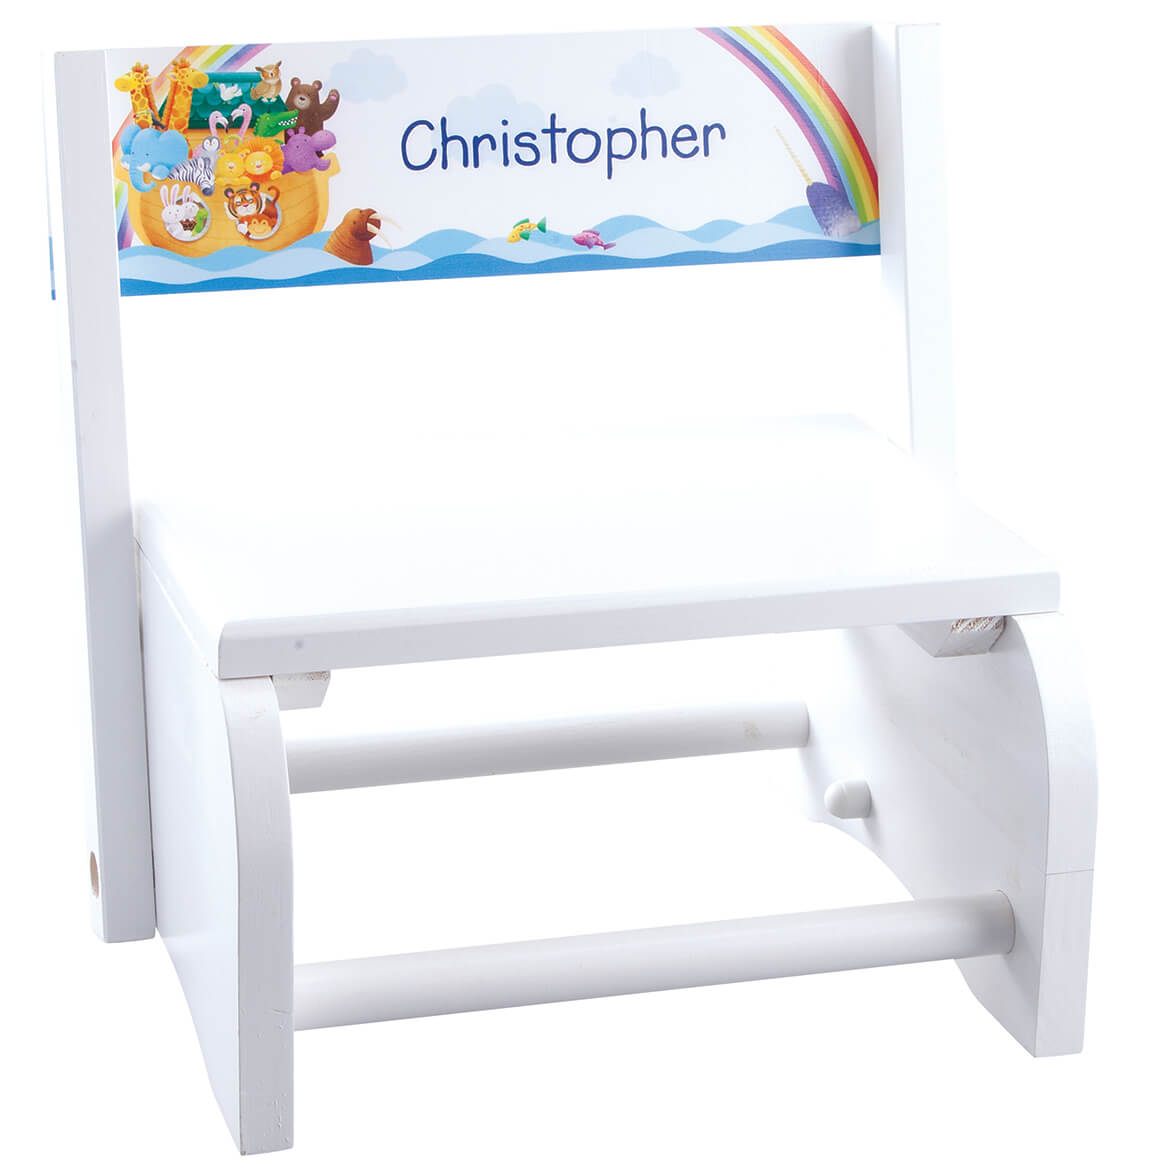 Personalized White Noah's Ark Step Stool-369045